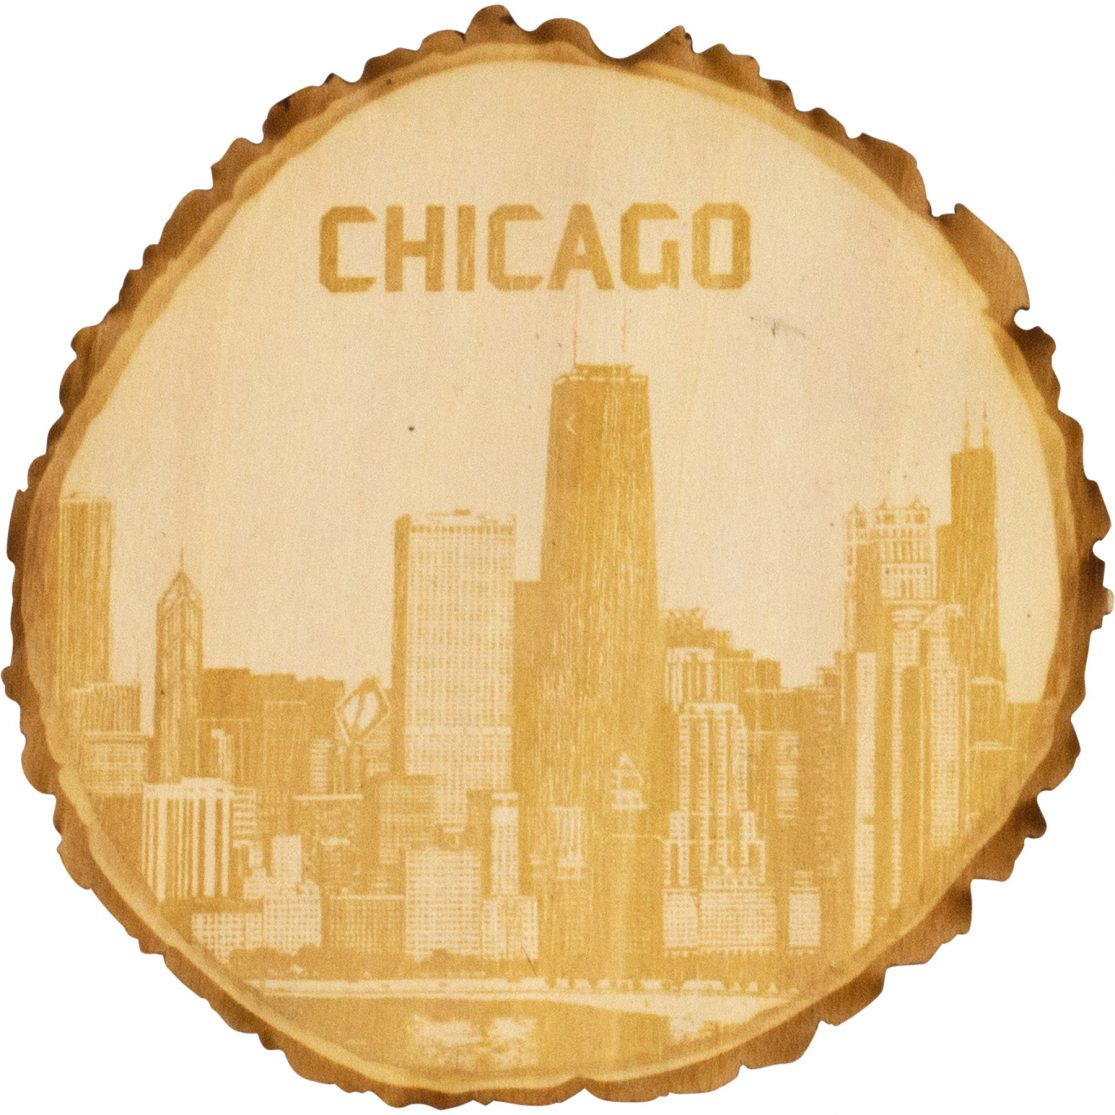 Real wood coasters, customized